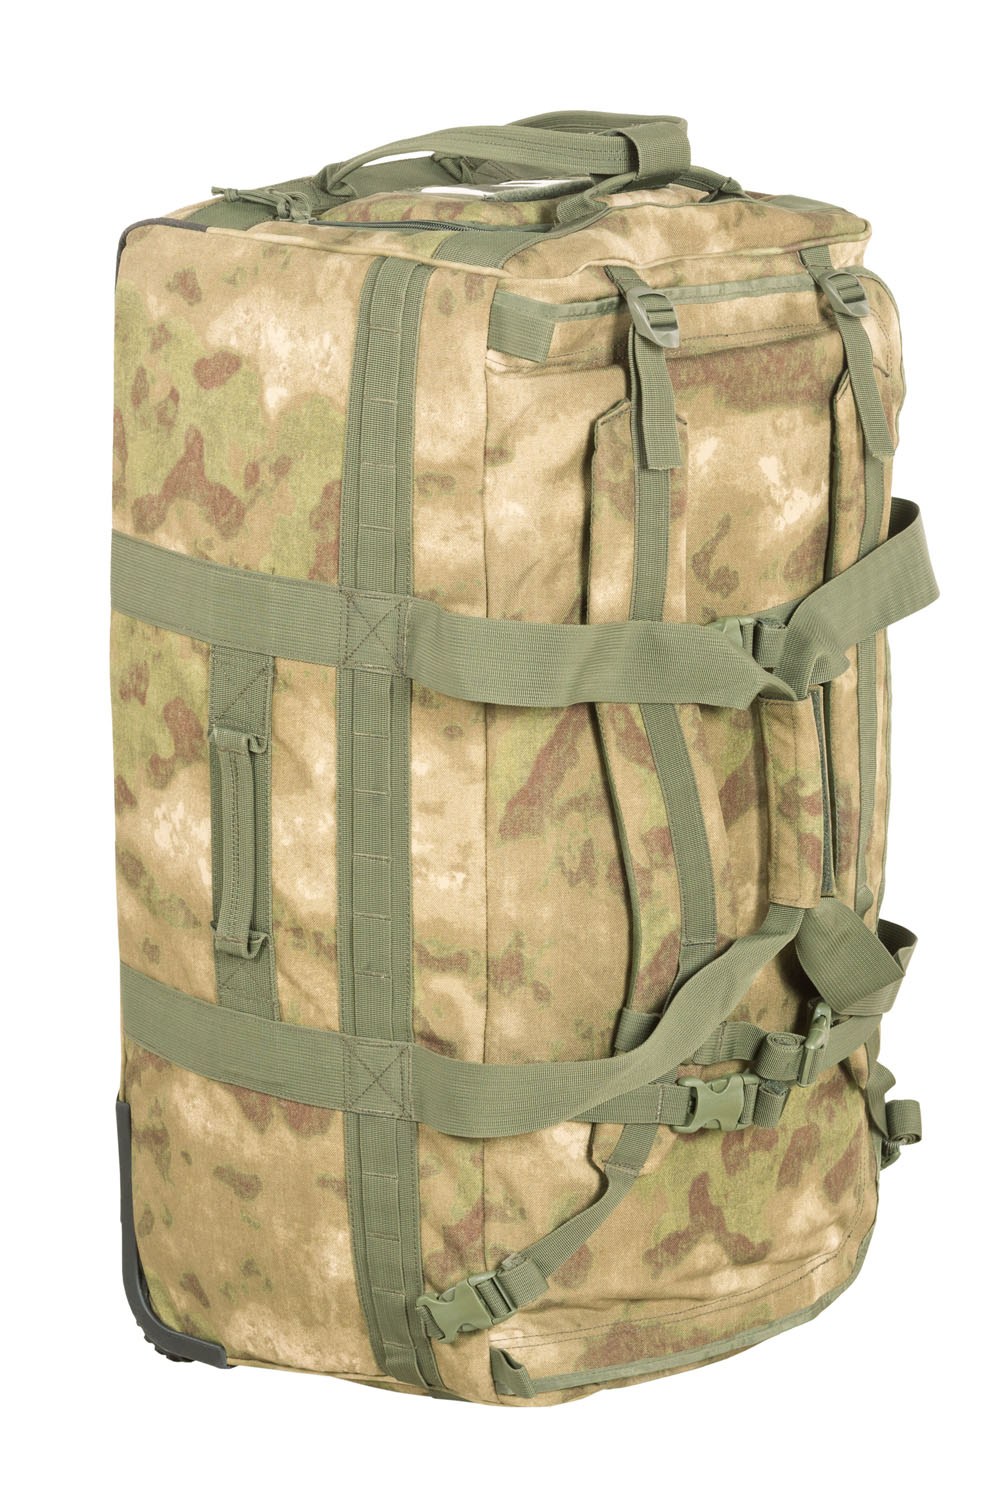 Field transport bag